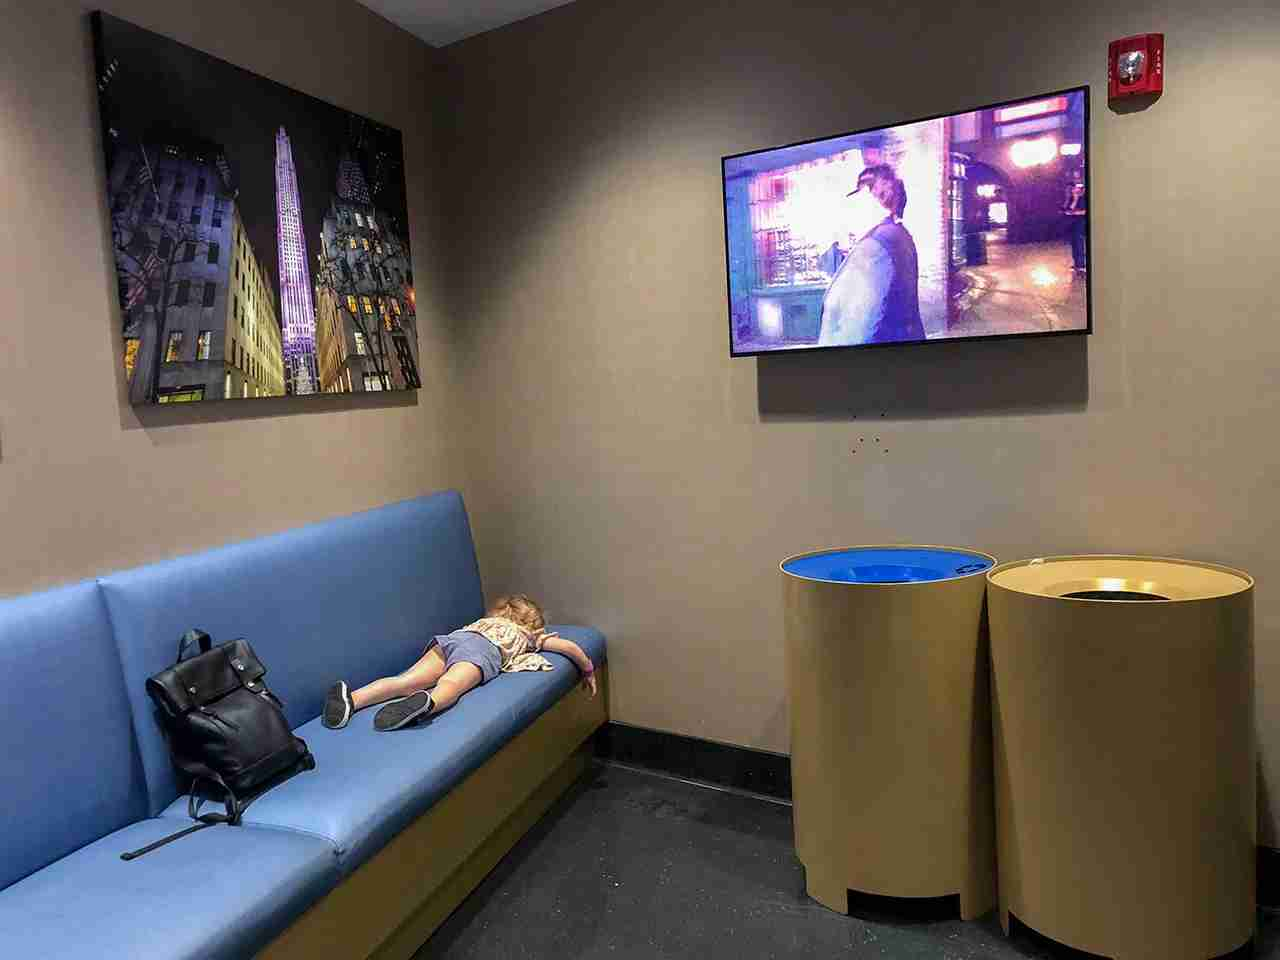 Universal waiting rooms (Summer Hull / The Points Guy)